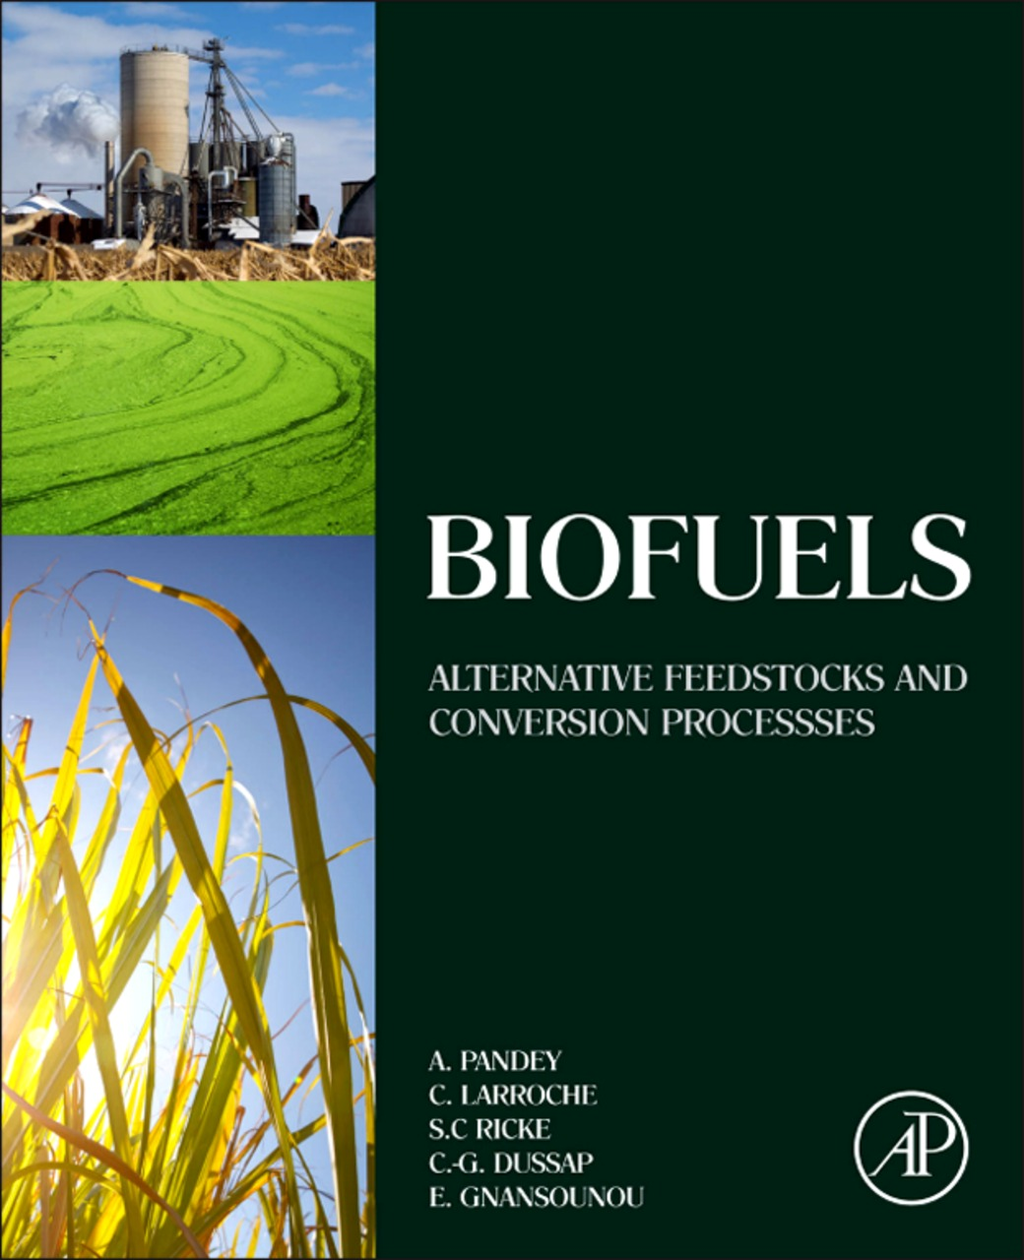 Biofuels Alternative Feedstocks and Conversion Processes